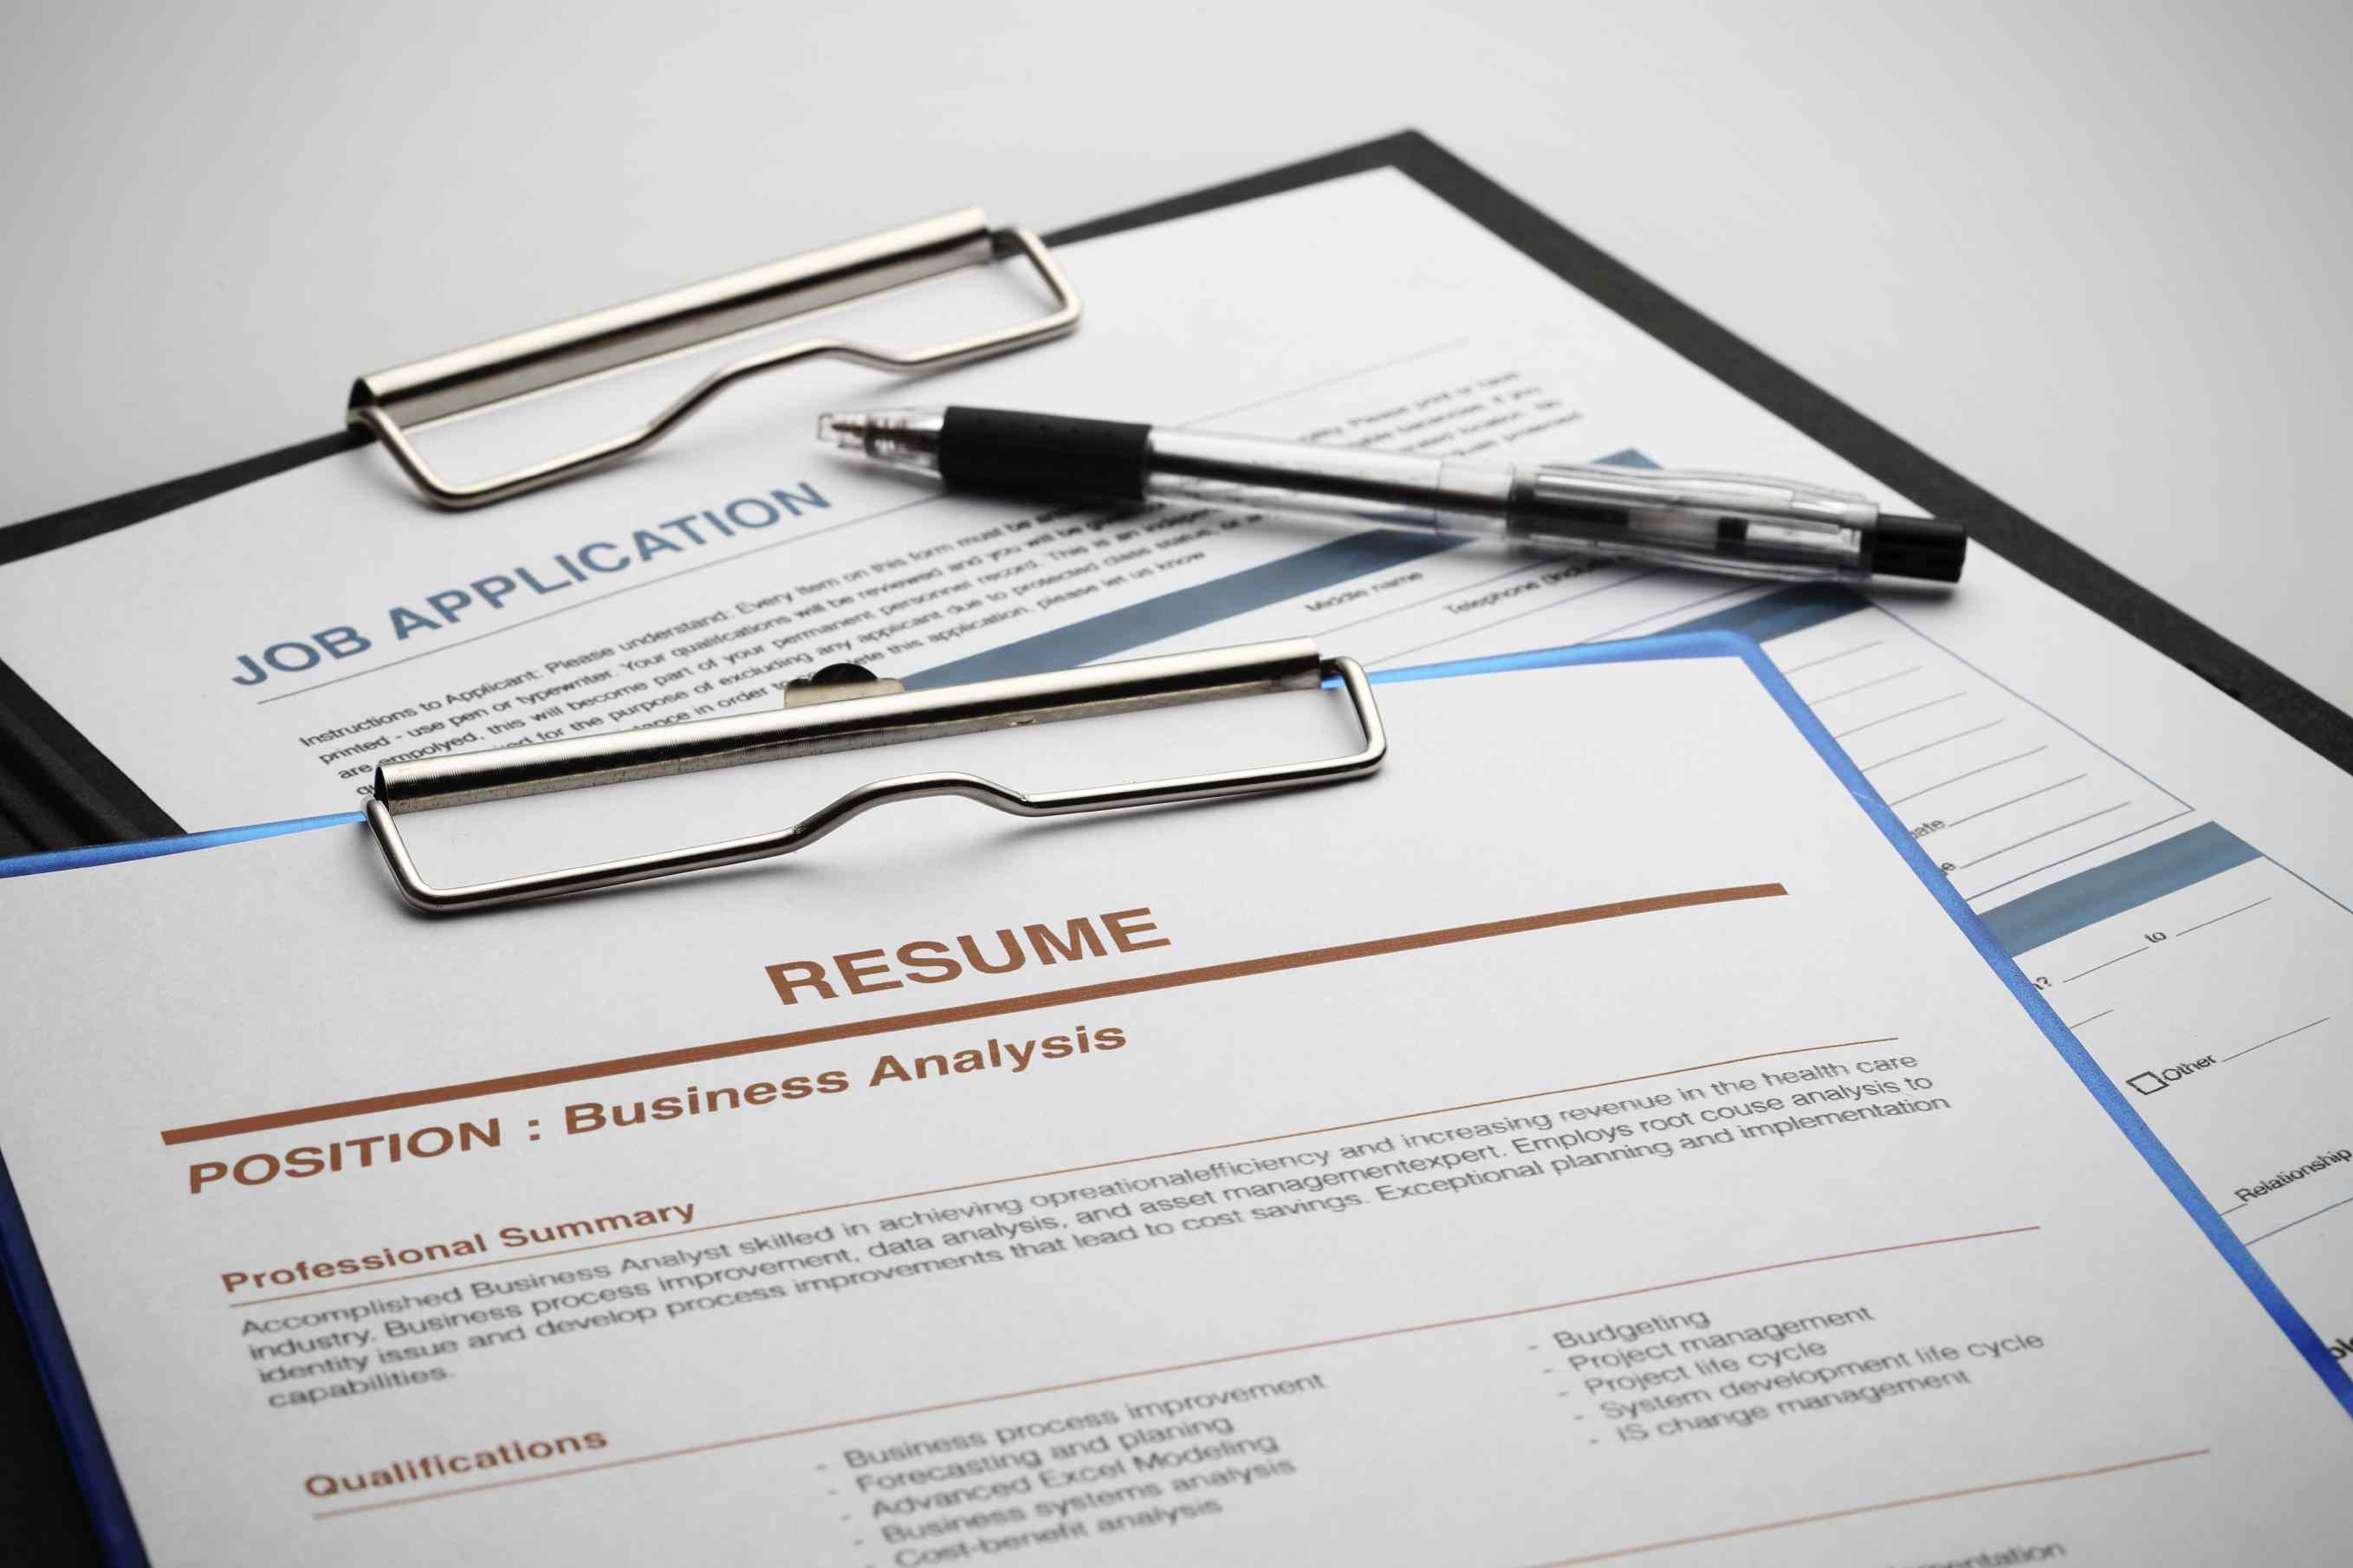 Top 15 Tips for Writing a Great Resume